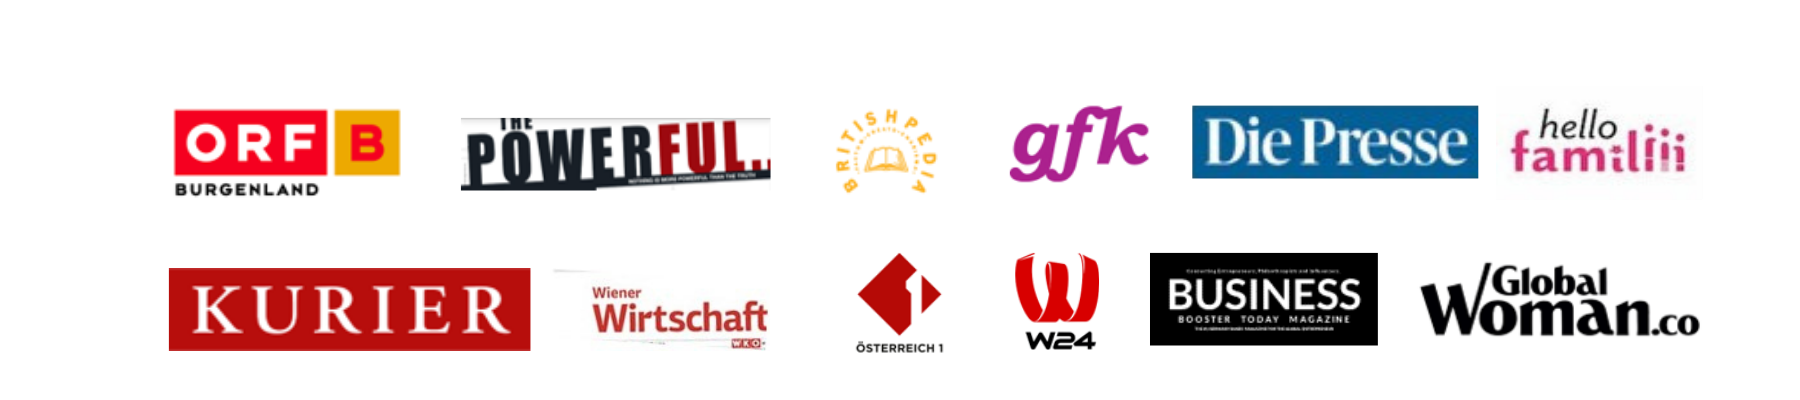 Logos - colored